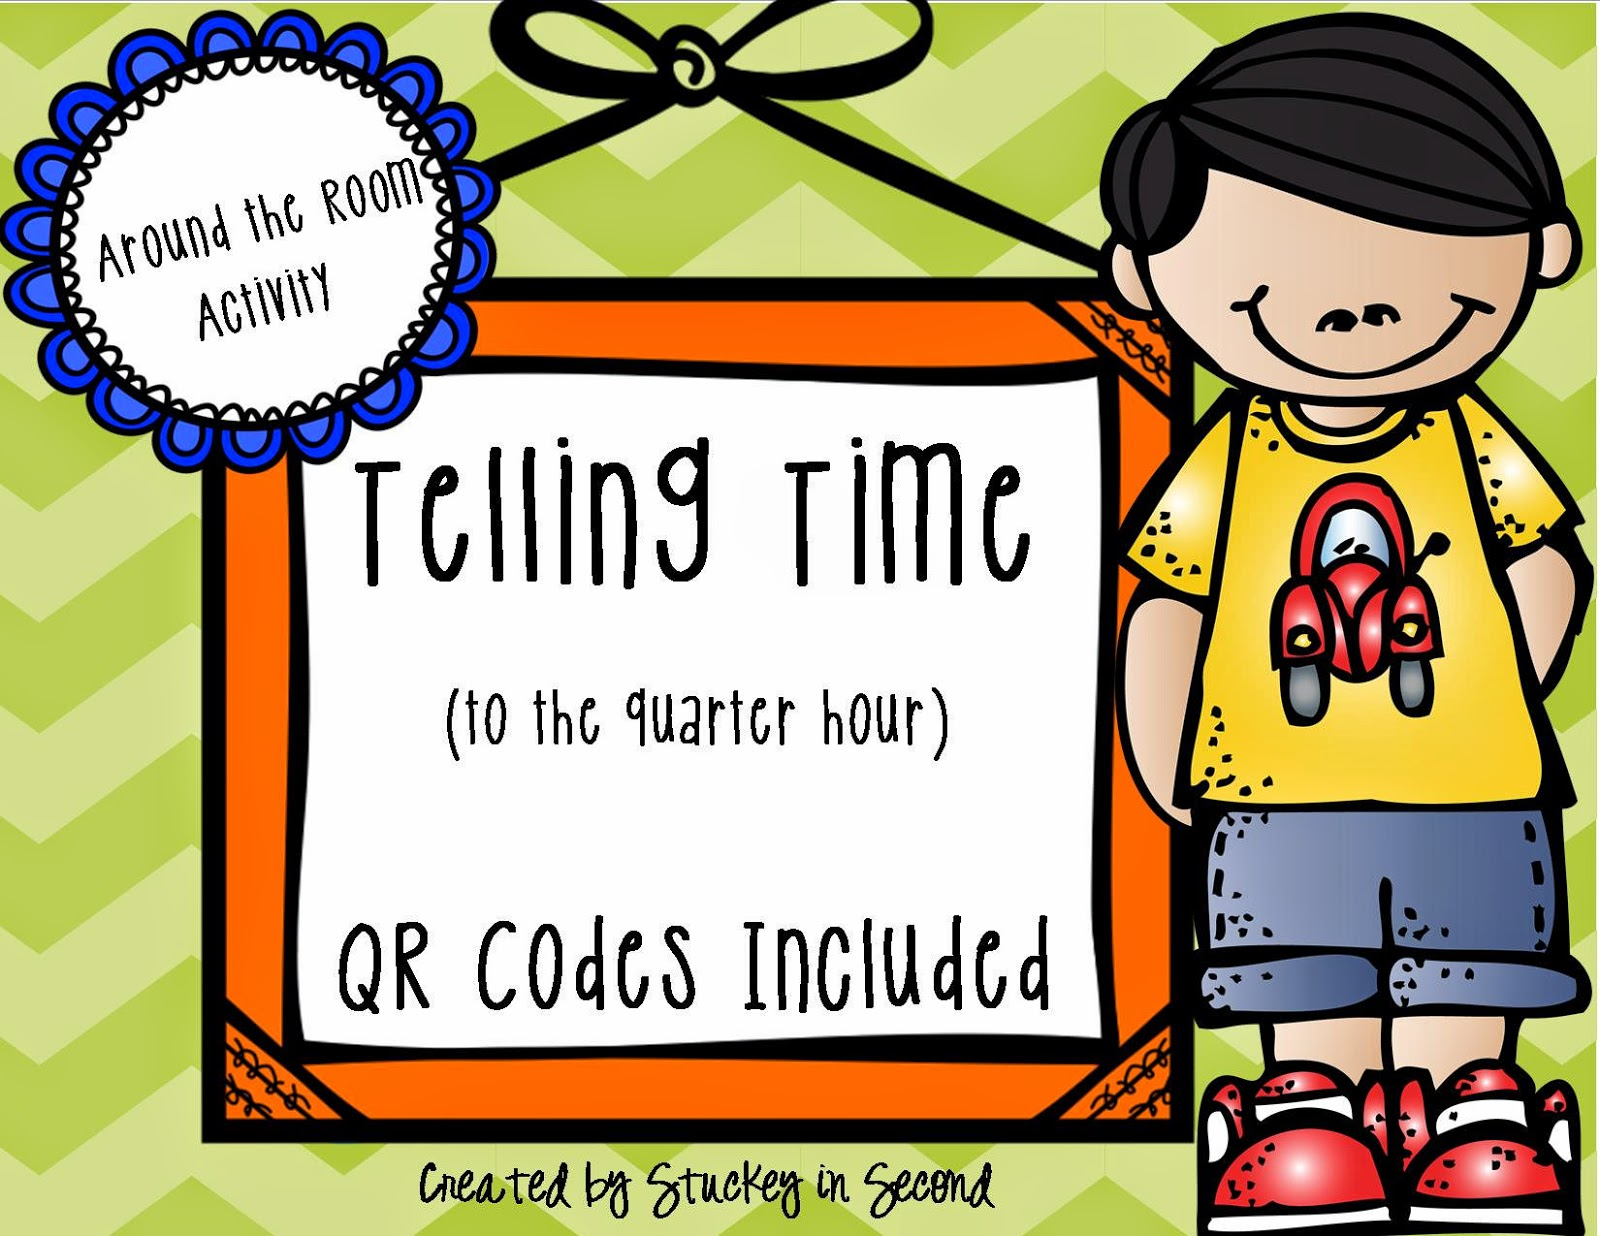 http://www.teacherspayteachers.com/Product/Telling-Time-Around-the-Room-with-QR-Codes-Quarter-Hour-1101019